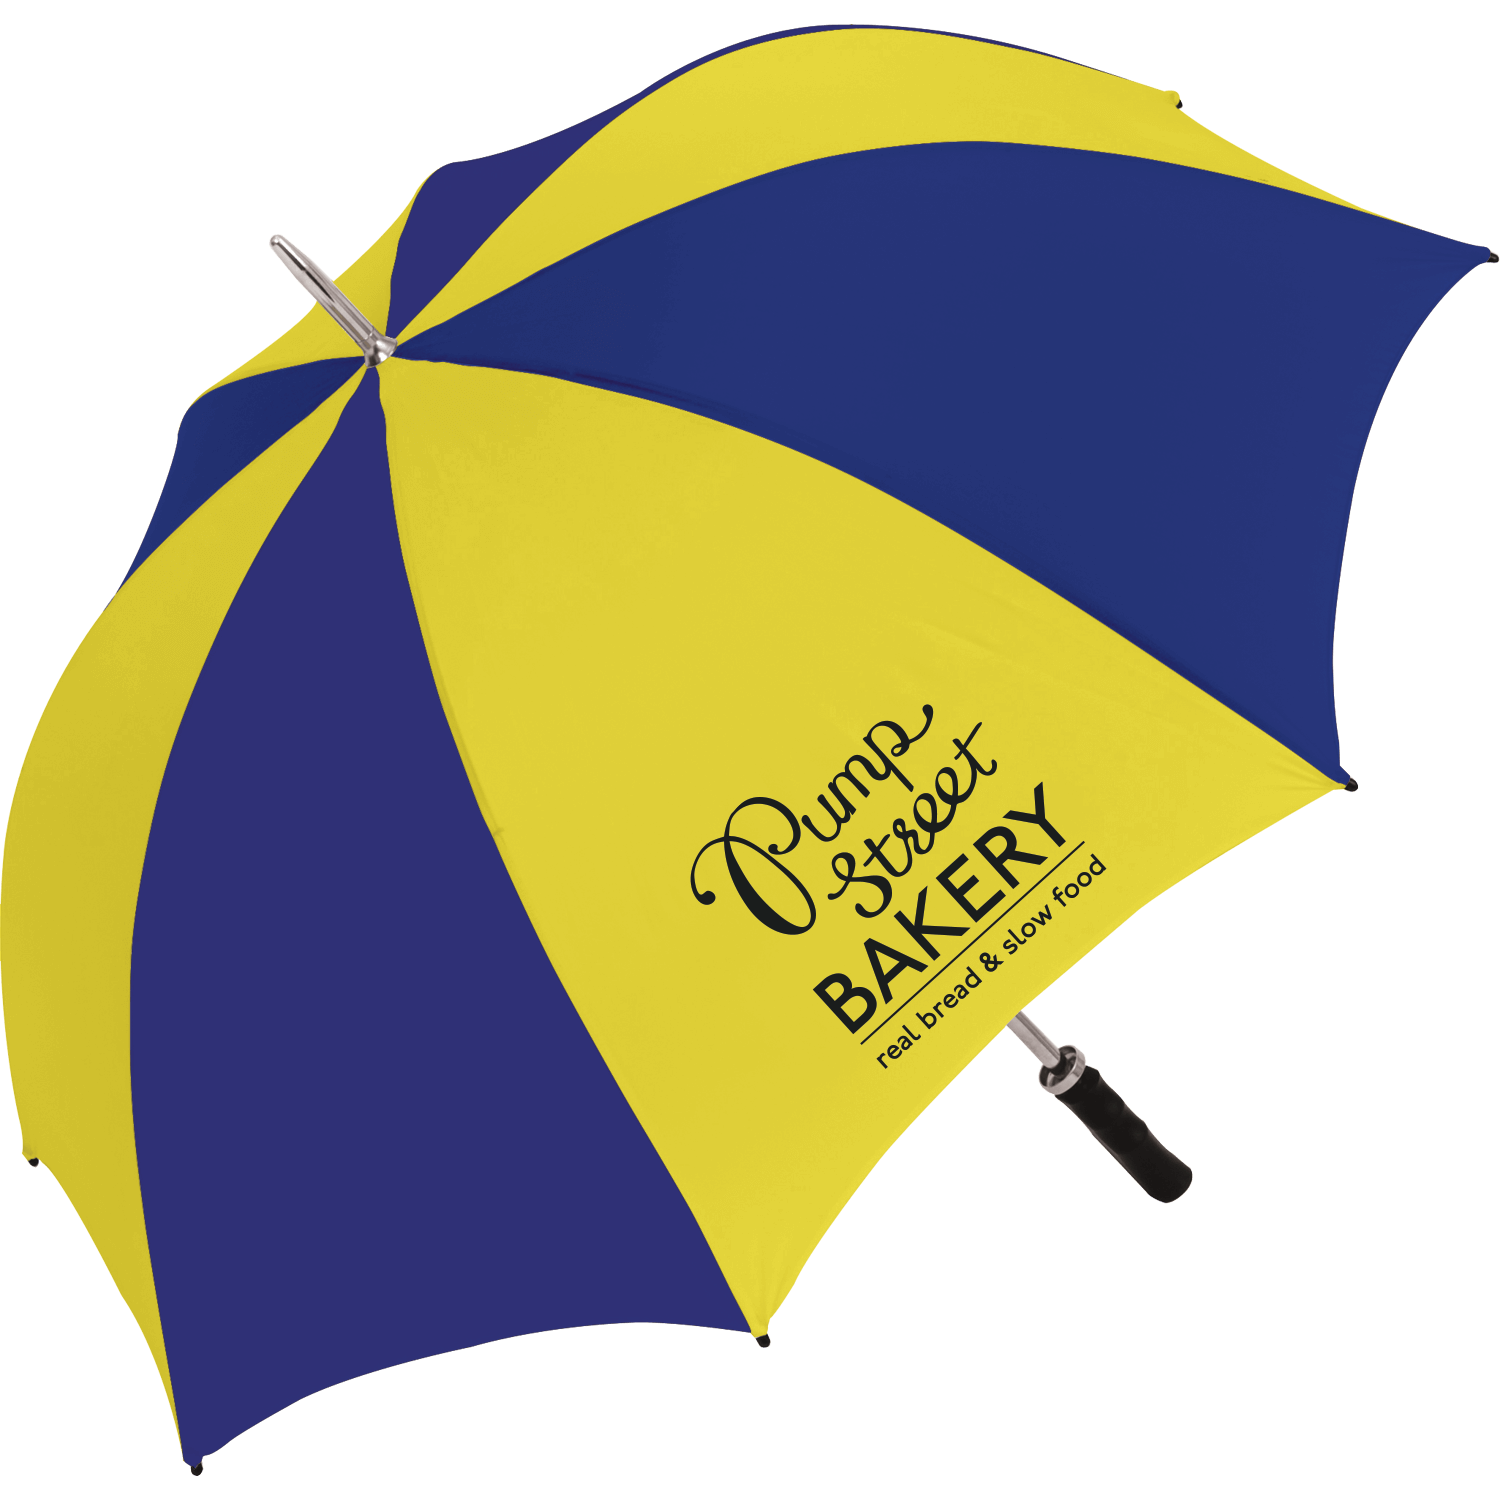 Bedford Golf Promotional Umbrella